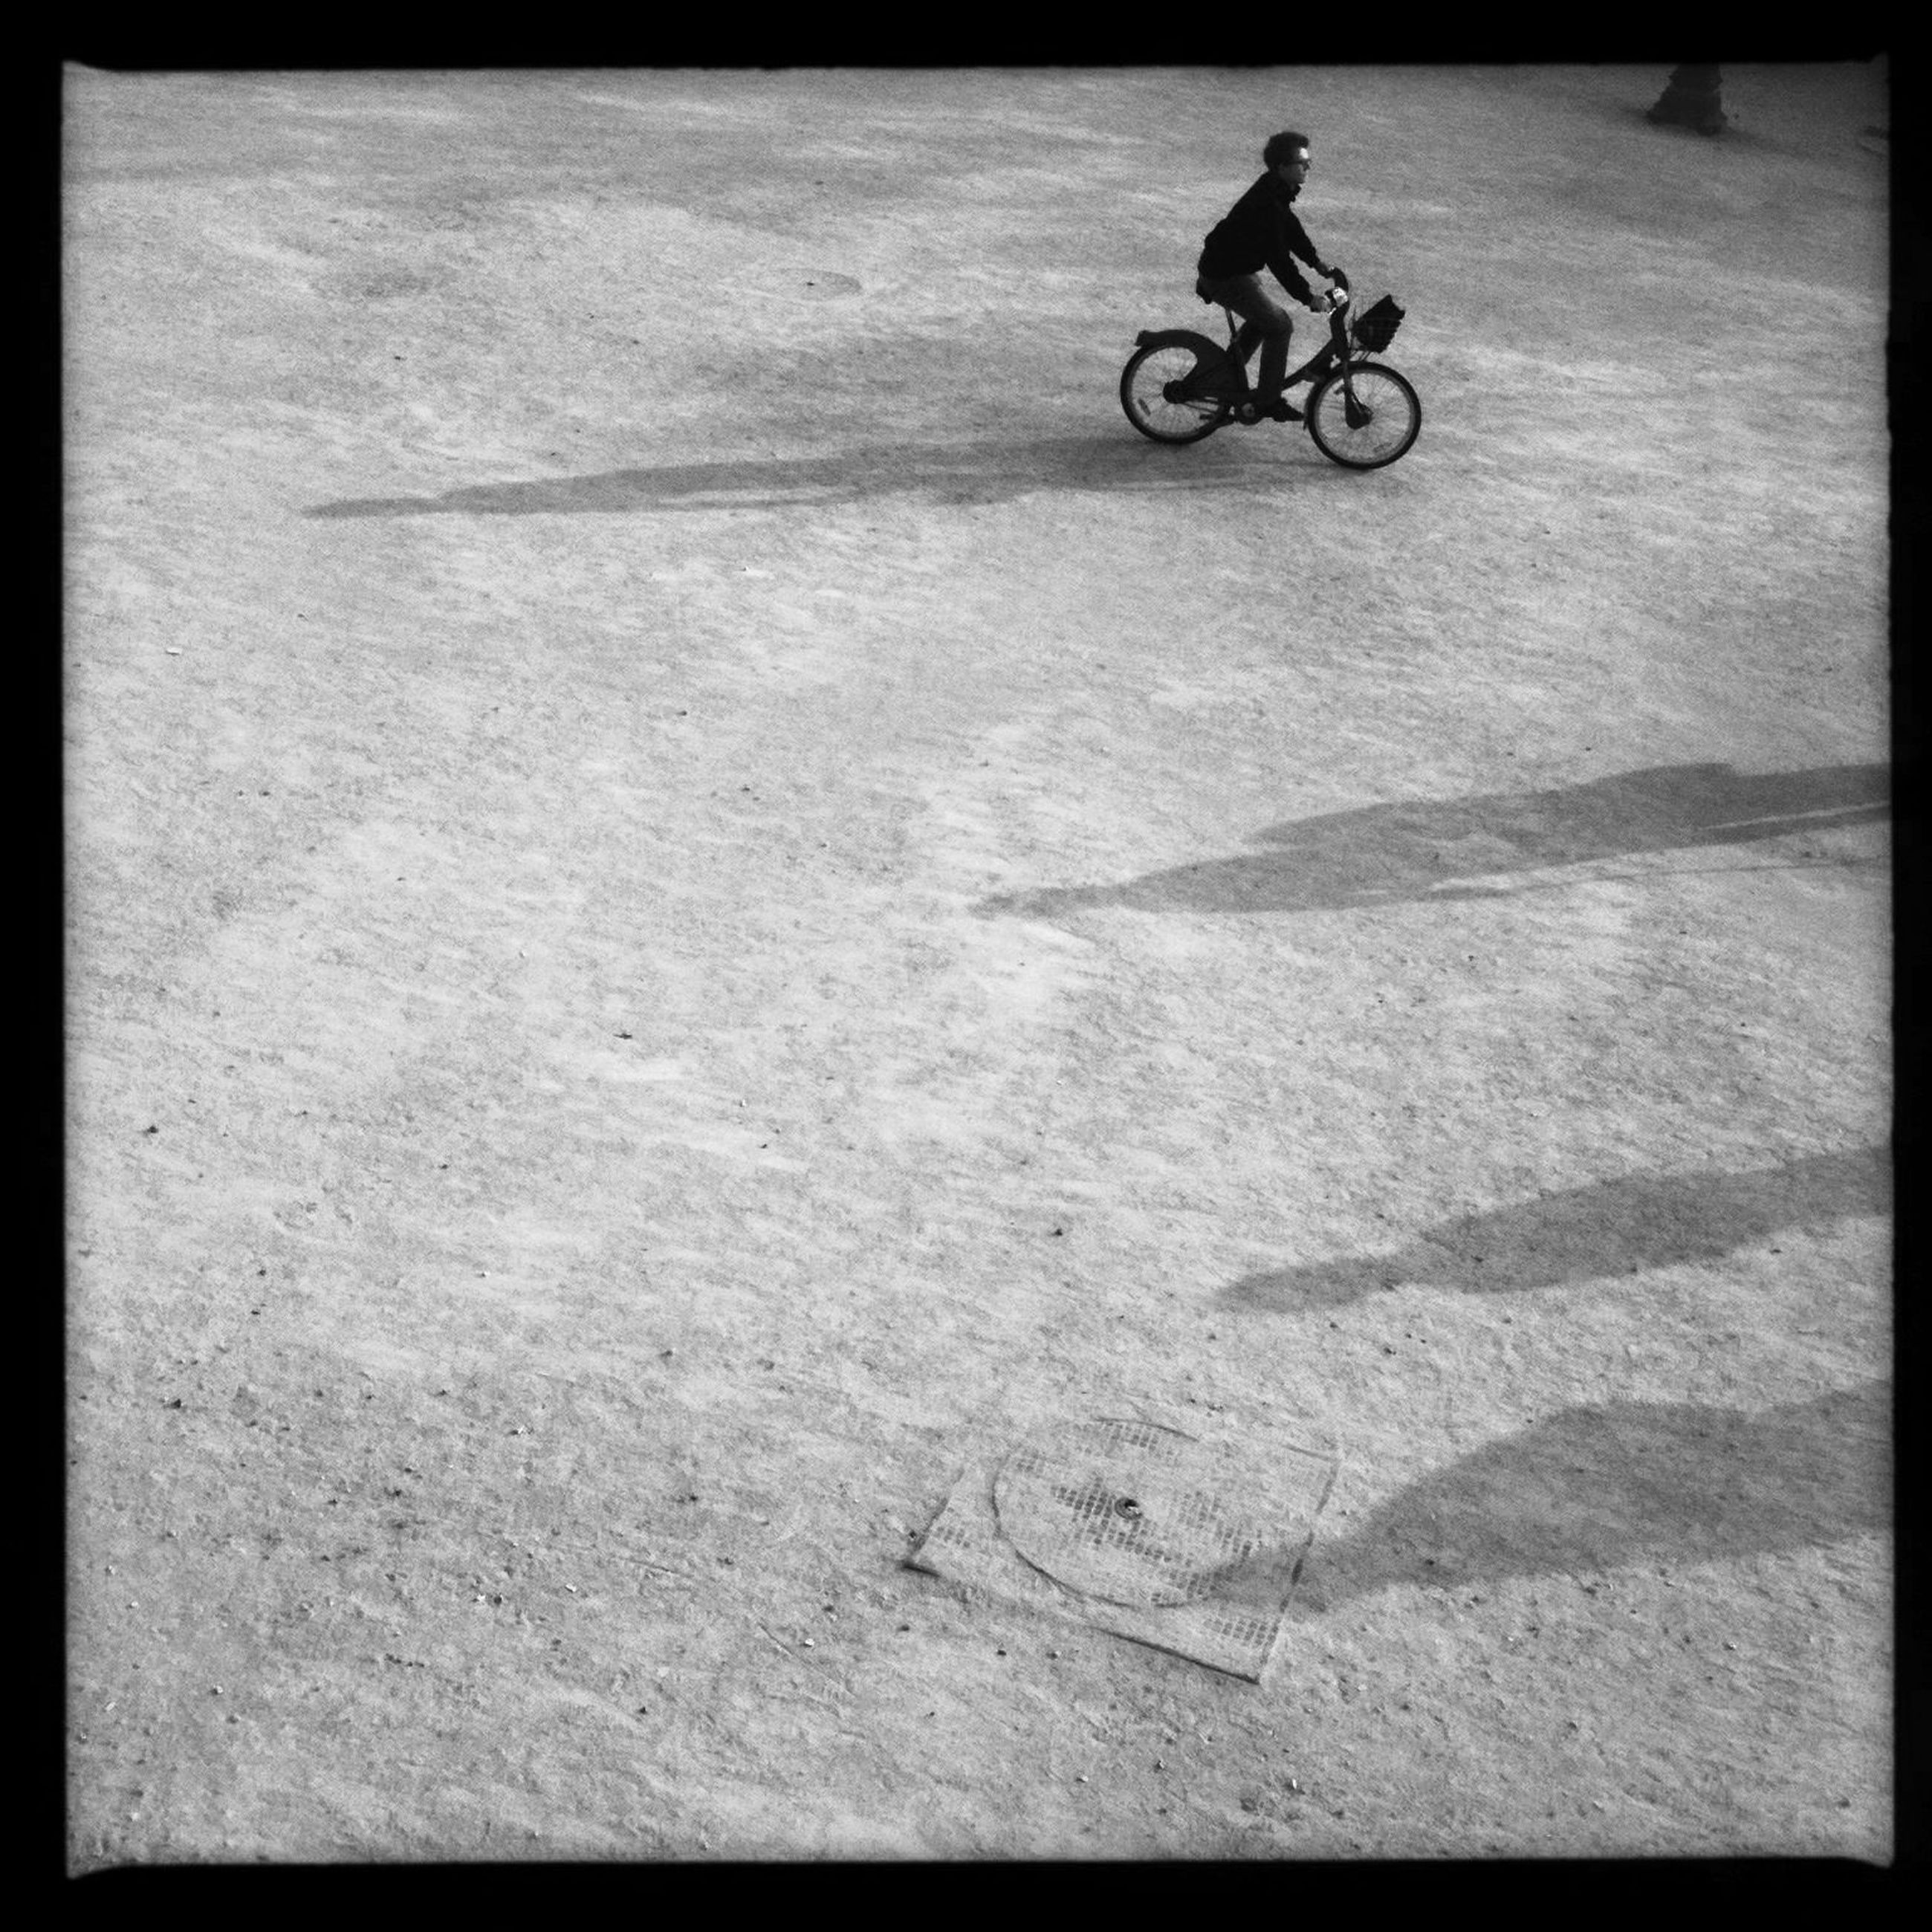 bicycle, lifestyles, transportation, leisure activity, low section, men, mode of transport, riding, land vehicle, shadow, street, cycling, on the move, sunlight, full length, sport, walking, person